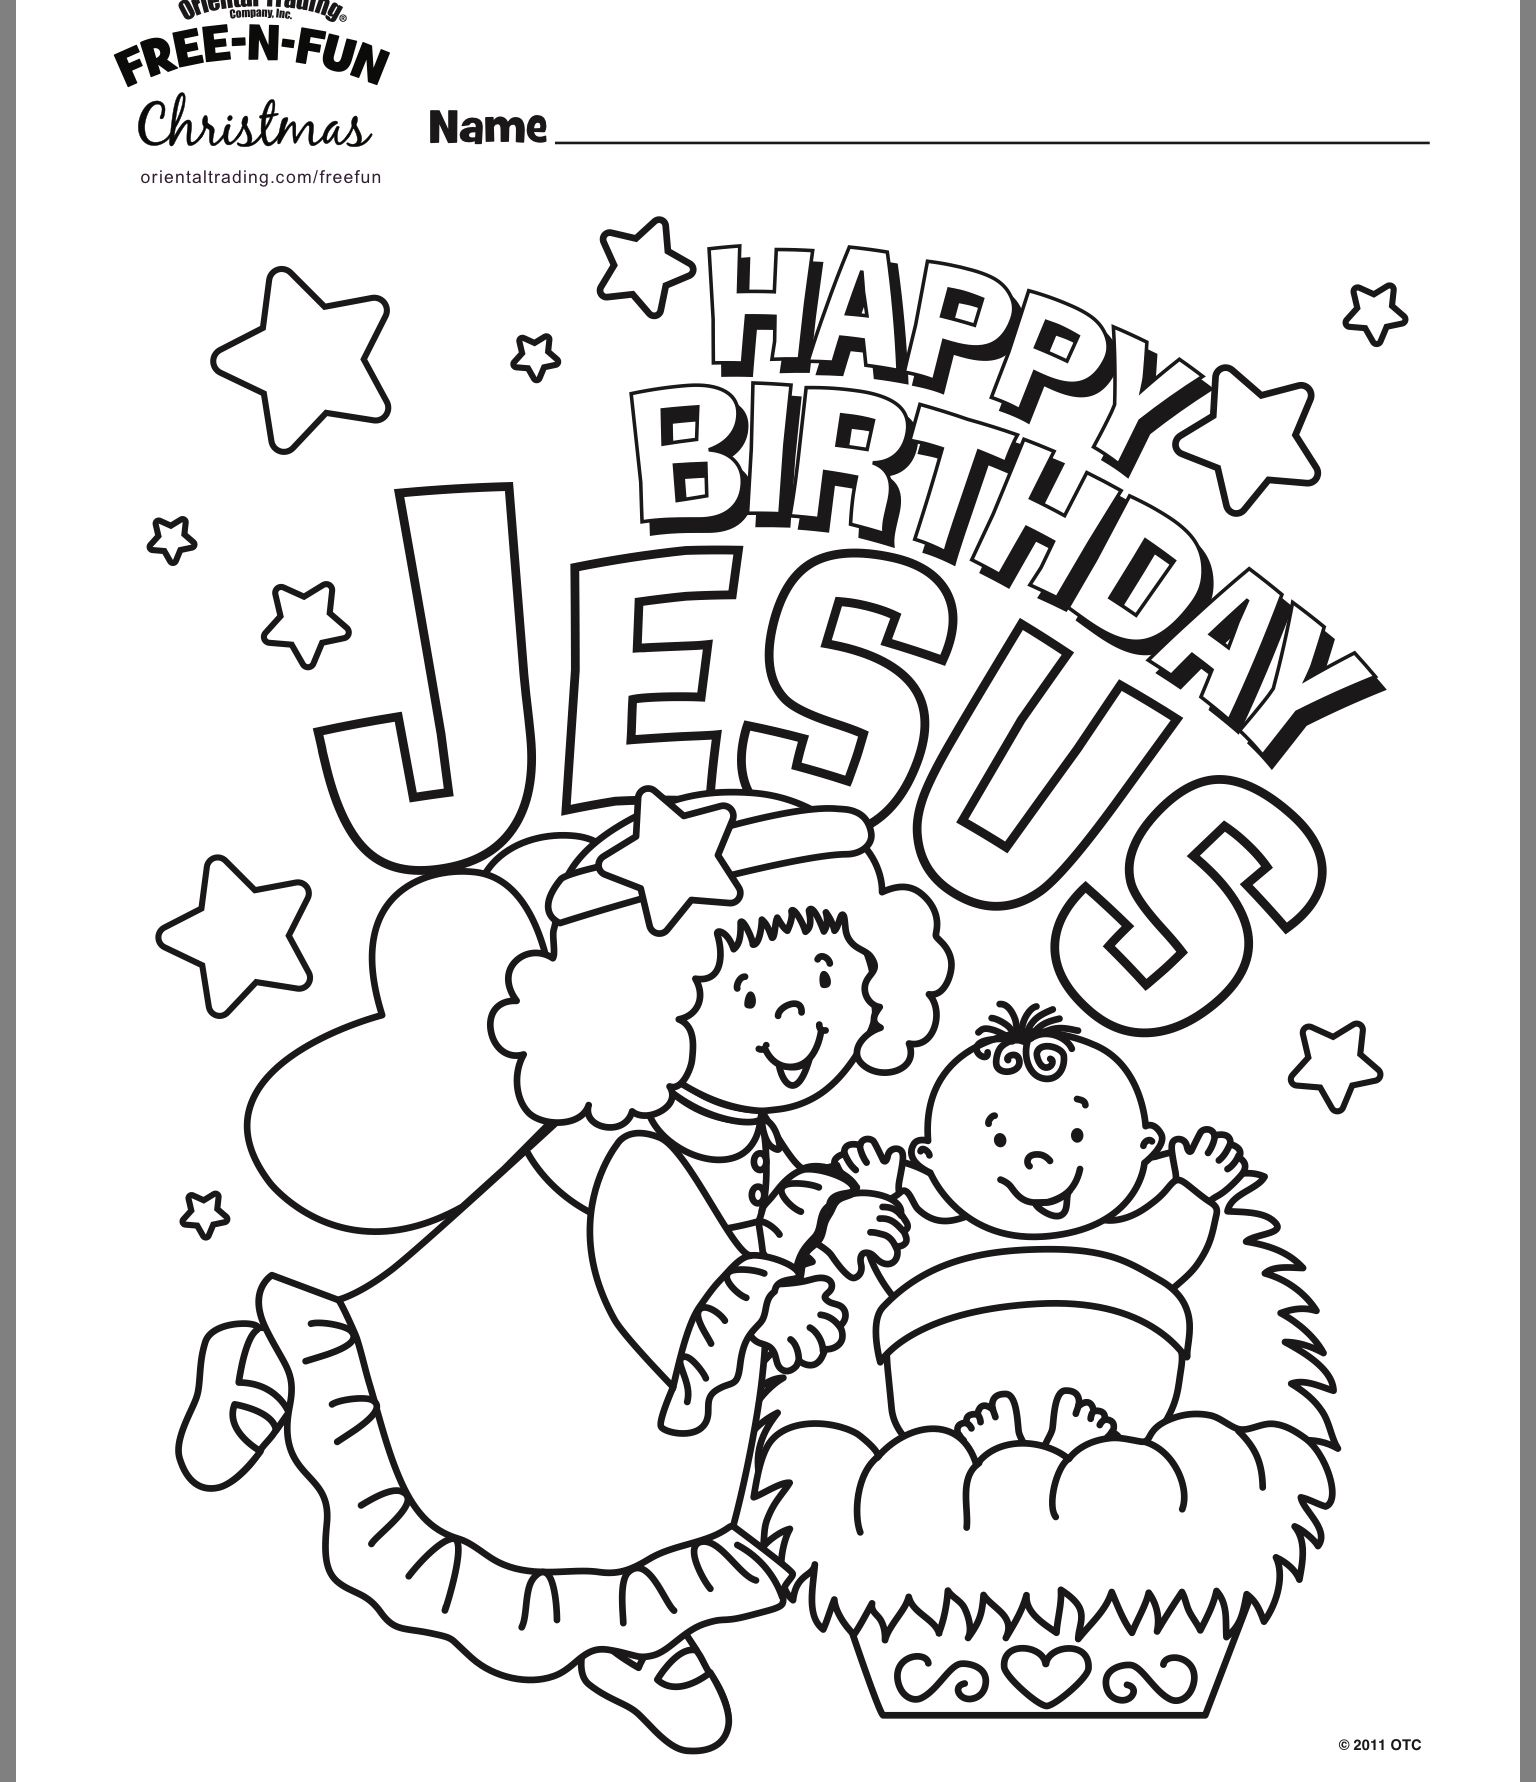 Pin By Teodora On Kids Coloring Pages Jesus Coloring Pages Christmas Coloring Pages Preschool Christmas